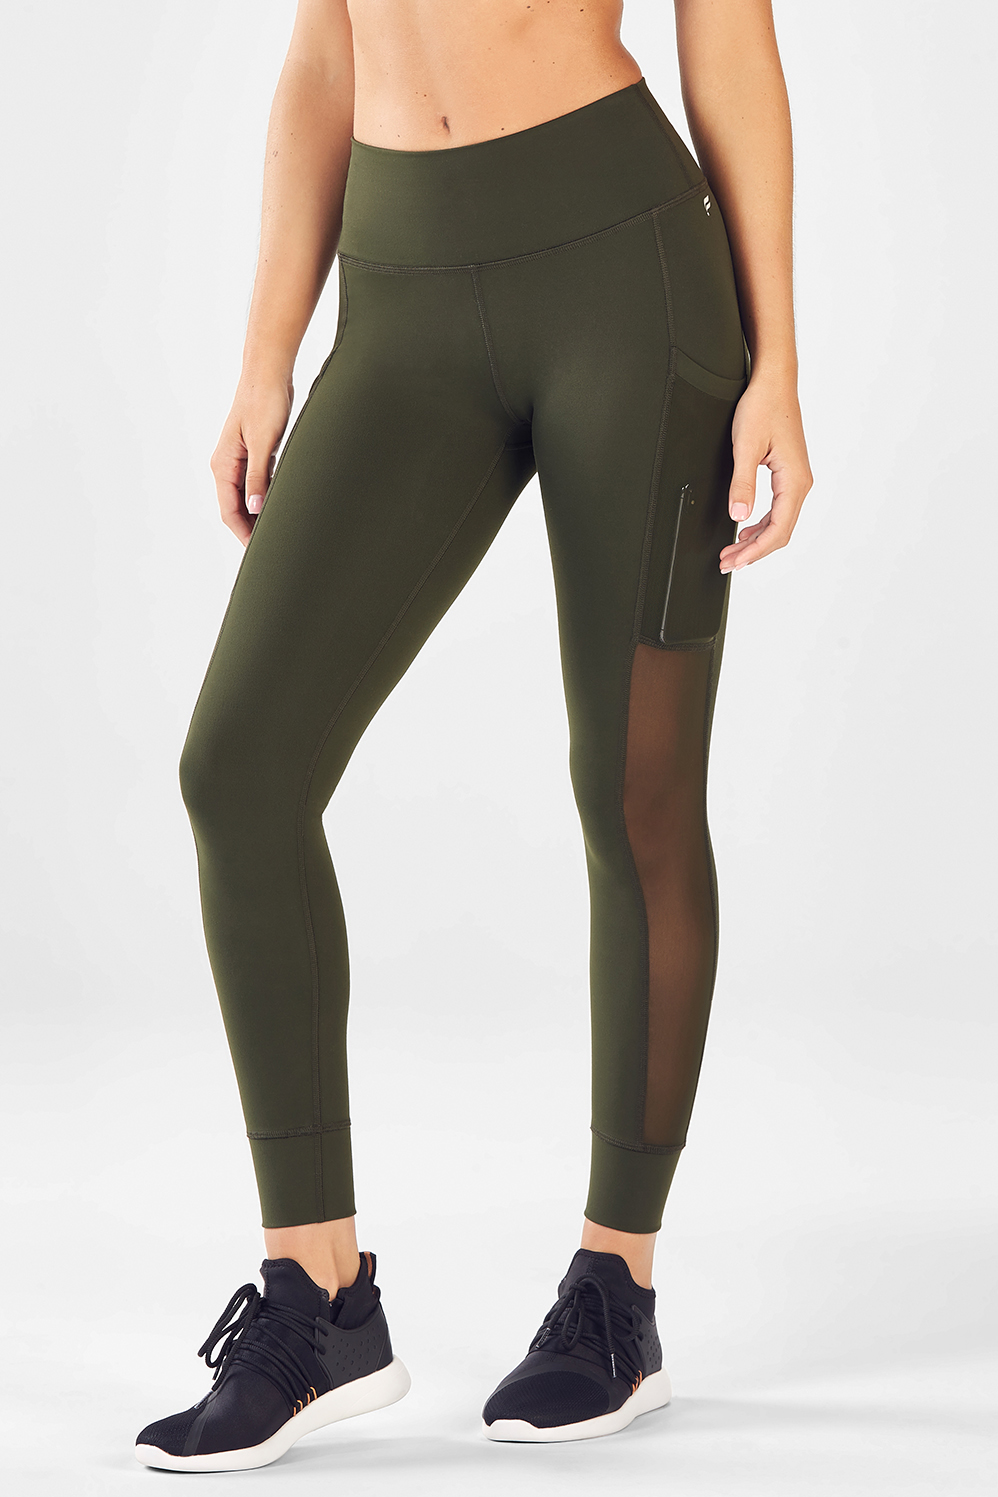 afc384203ad9cd Mila Pocket Legging - Fabletics